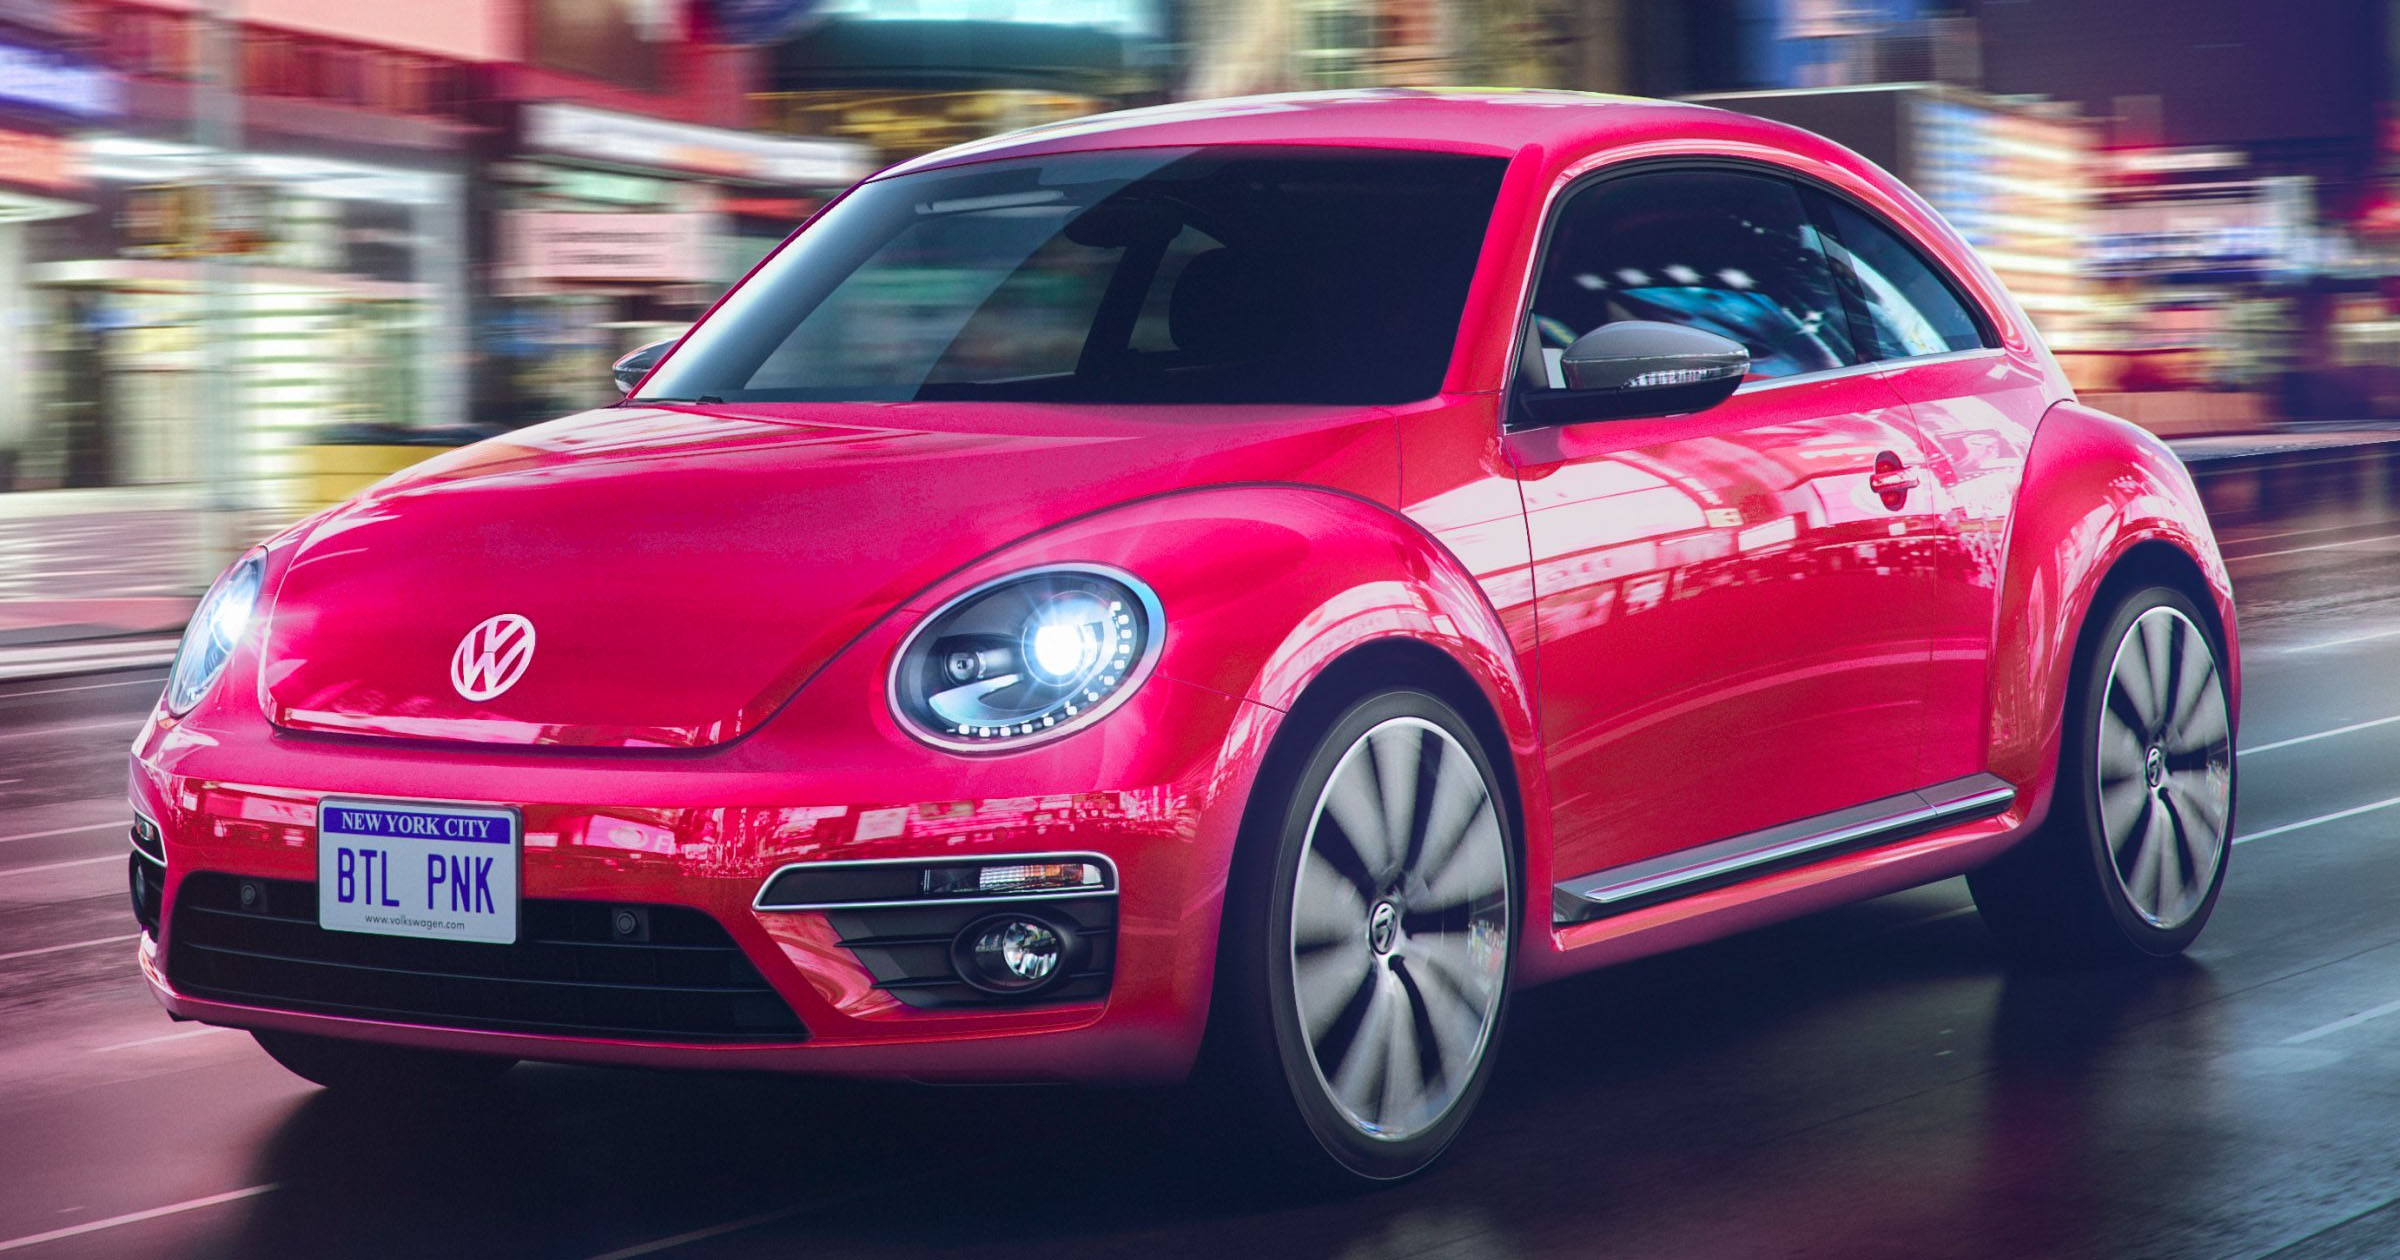 Leith Vw Cary >> A Pink Beetle It Happens In 2017